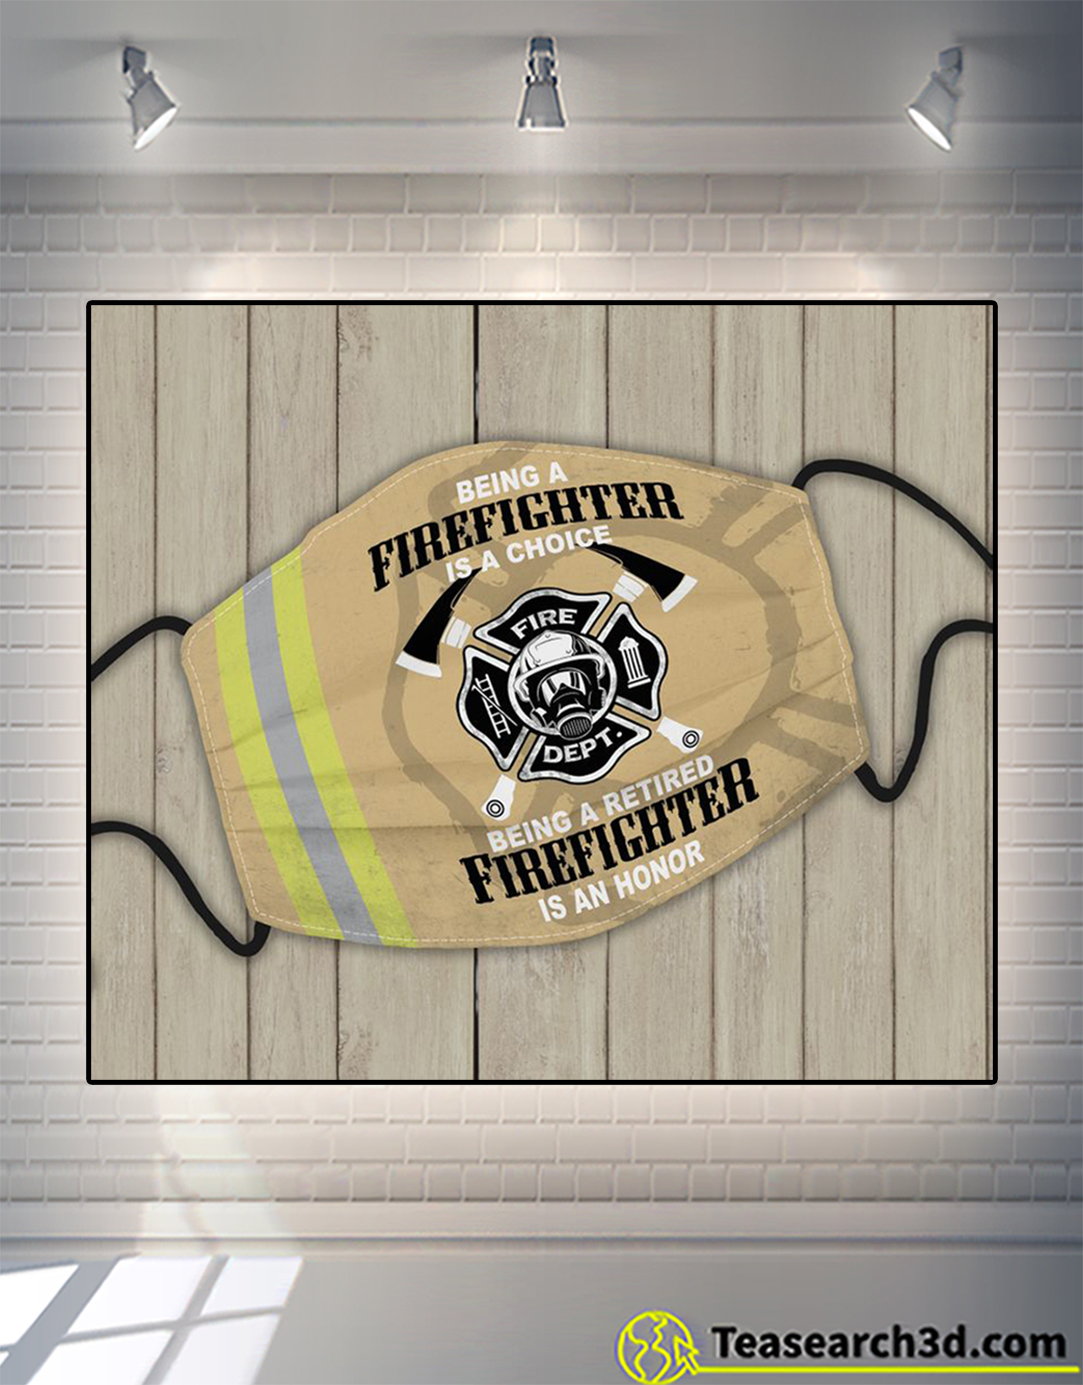 Being a firefighter is a choice face mask adult